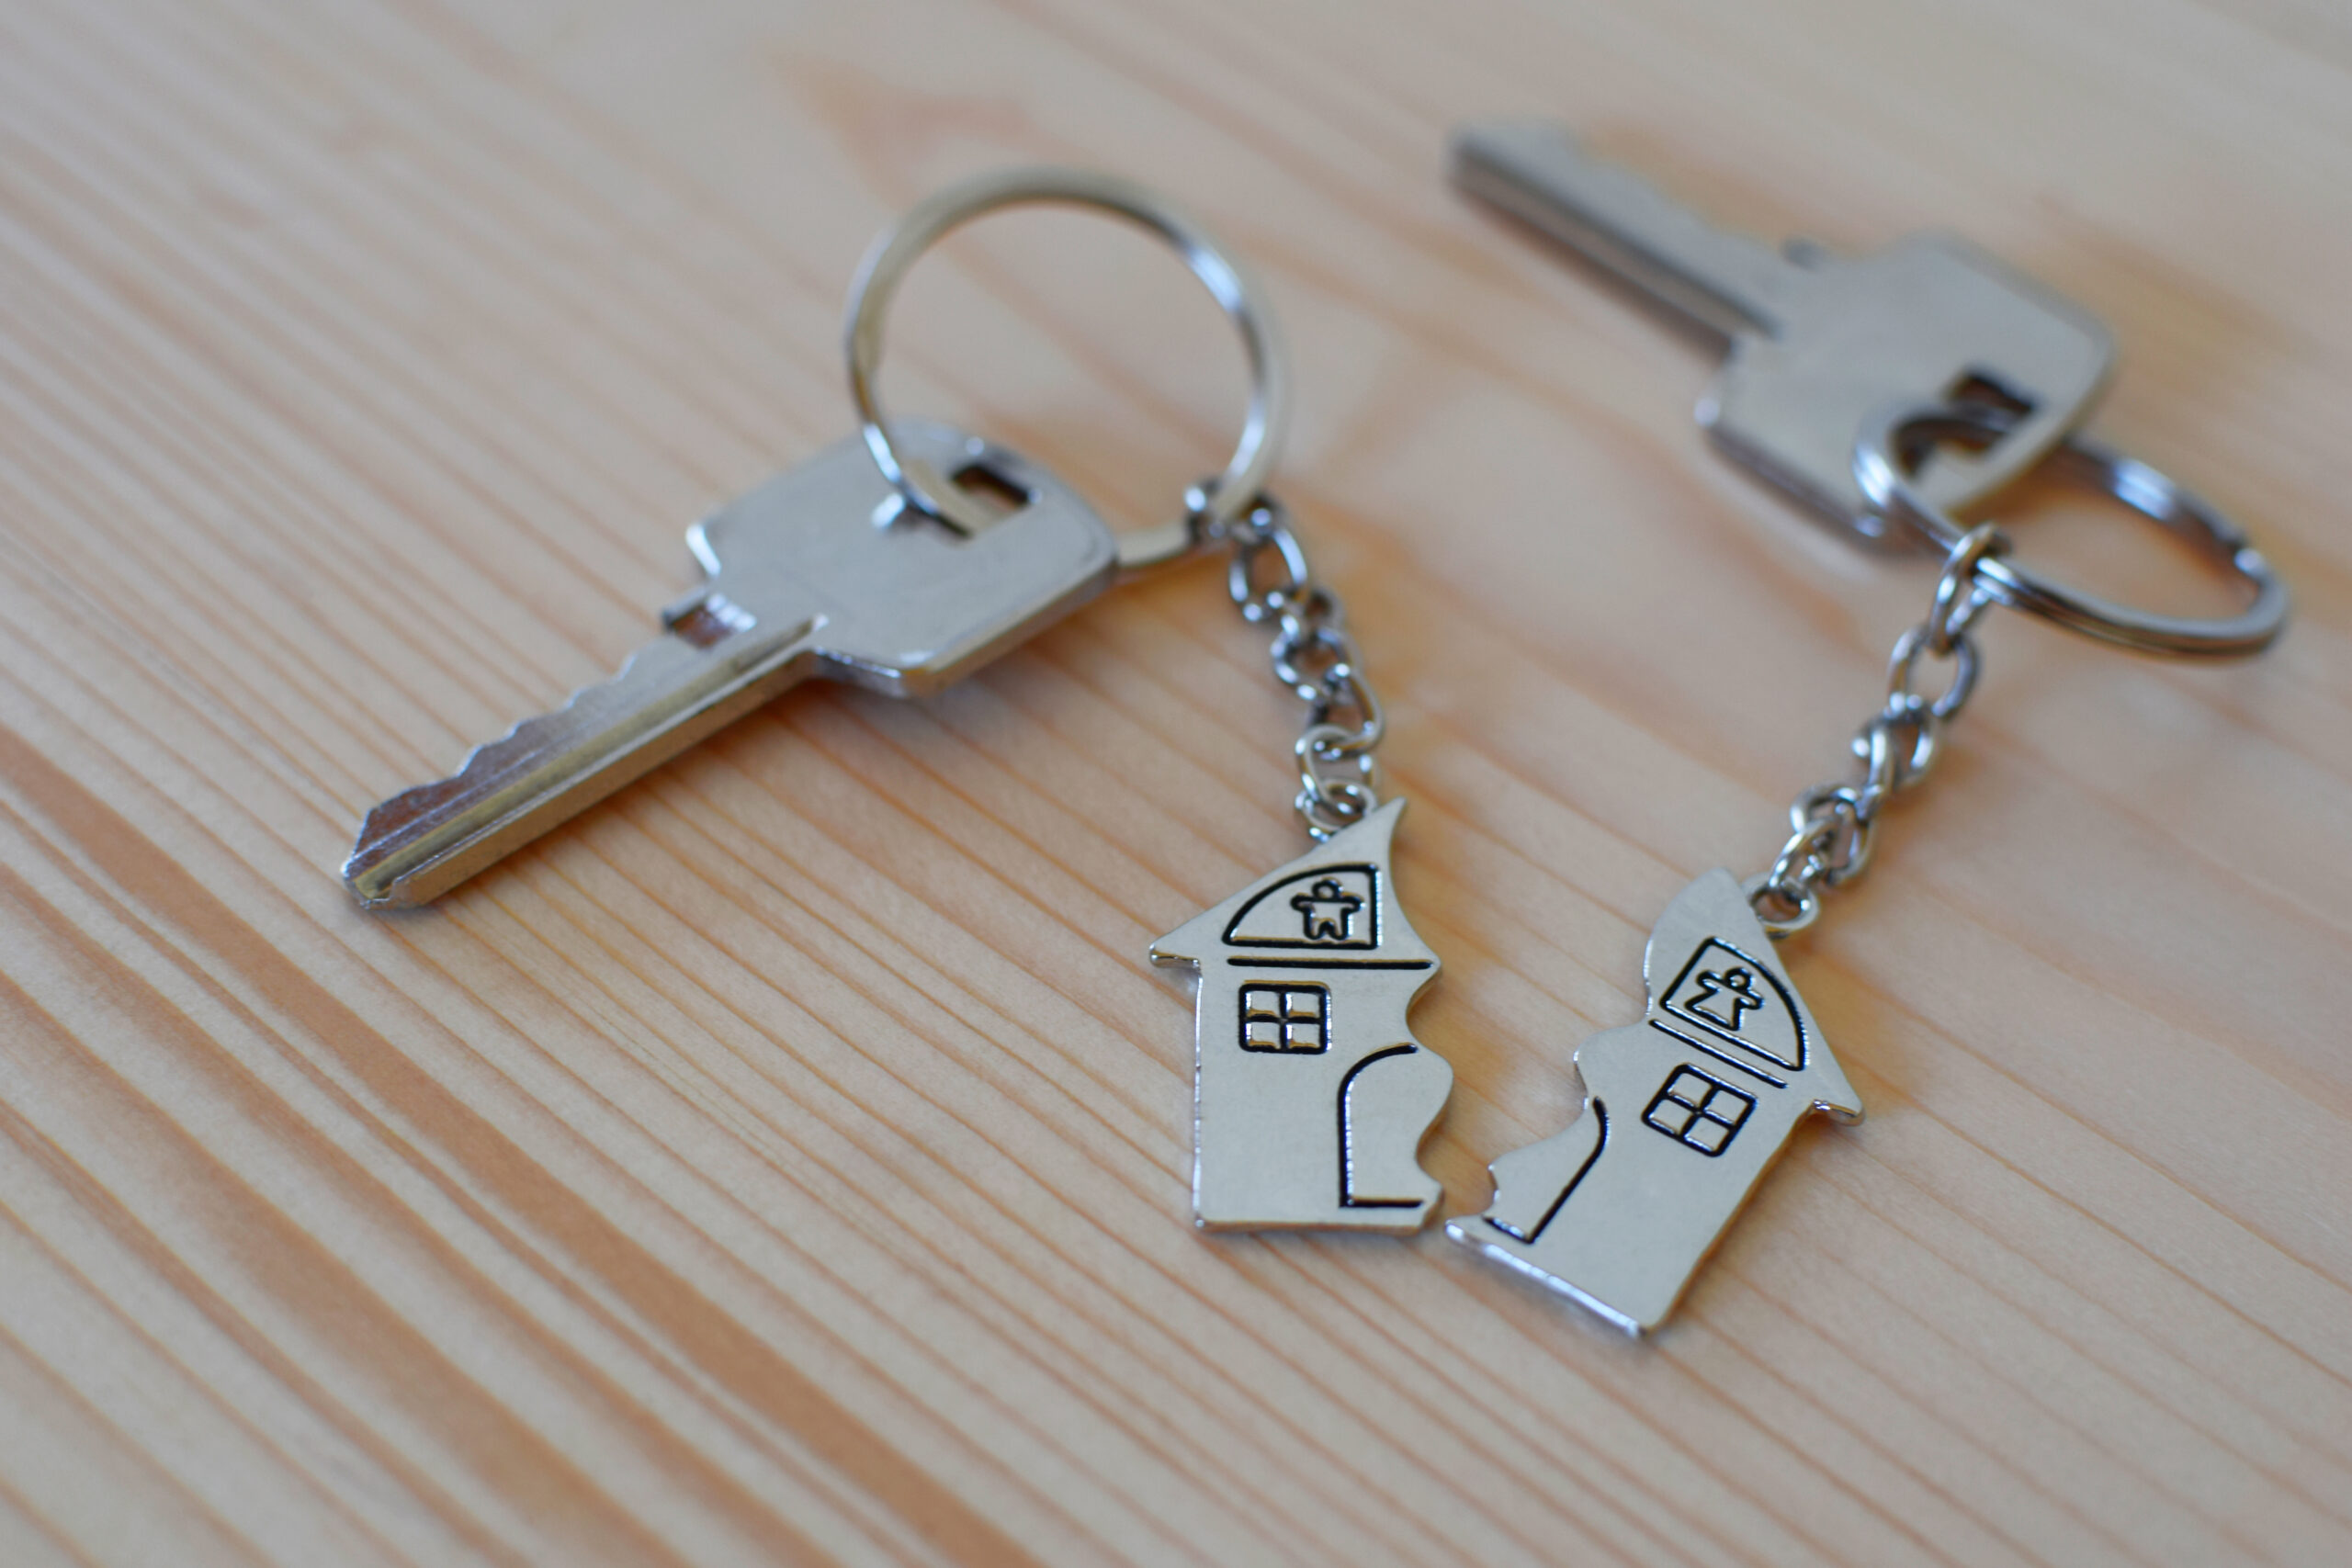 Pendant,Of,Key,Ring,In,Shape,Of,House,Divided,In